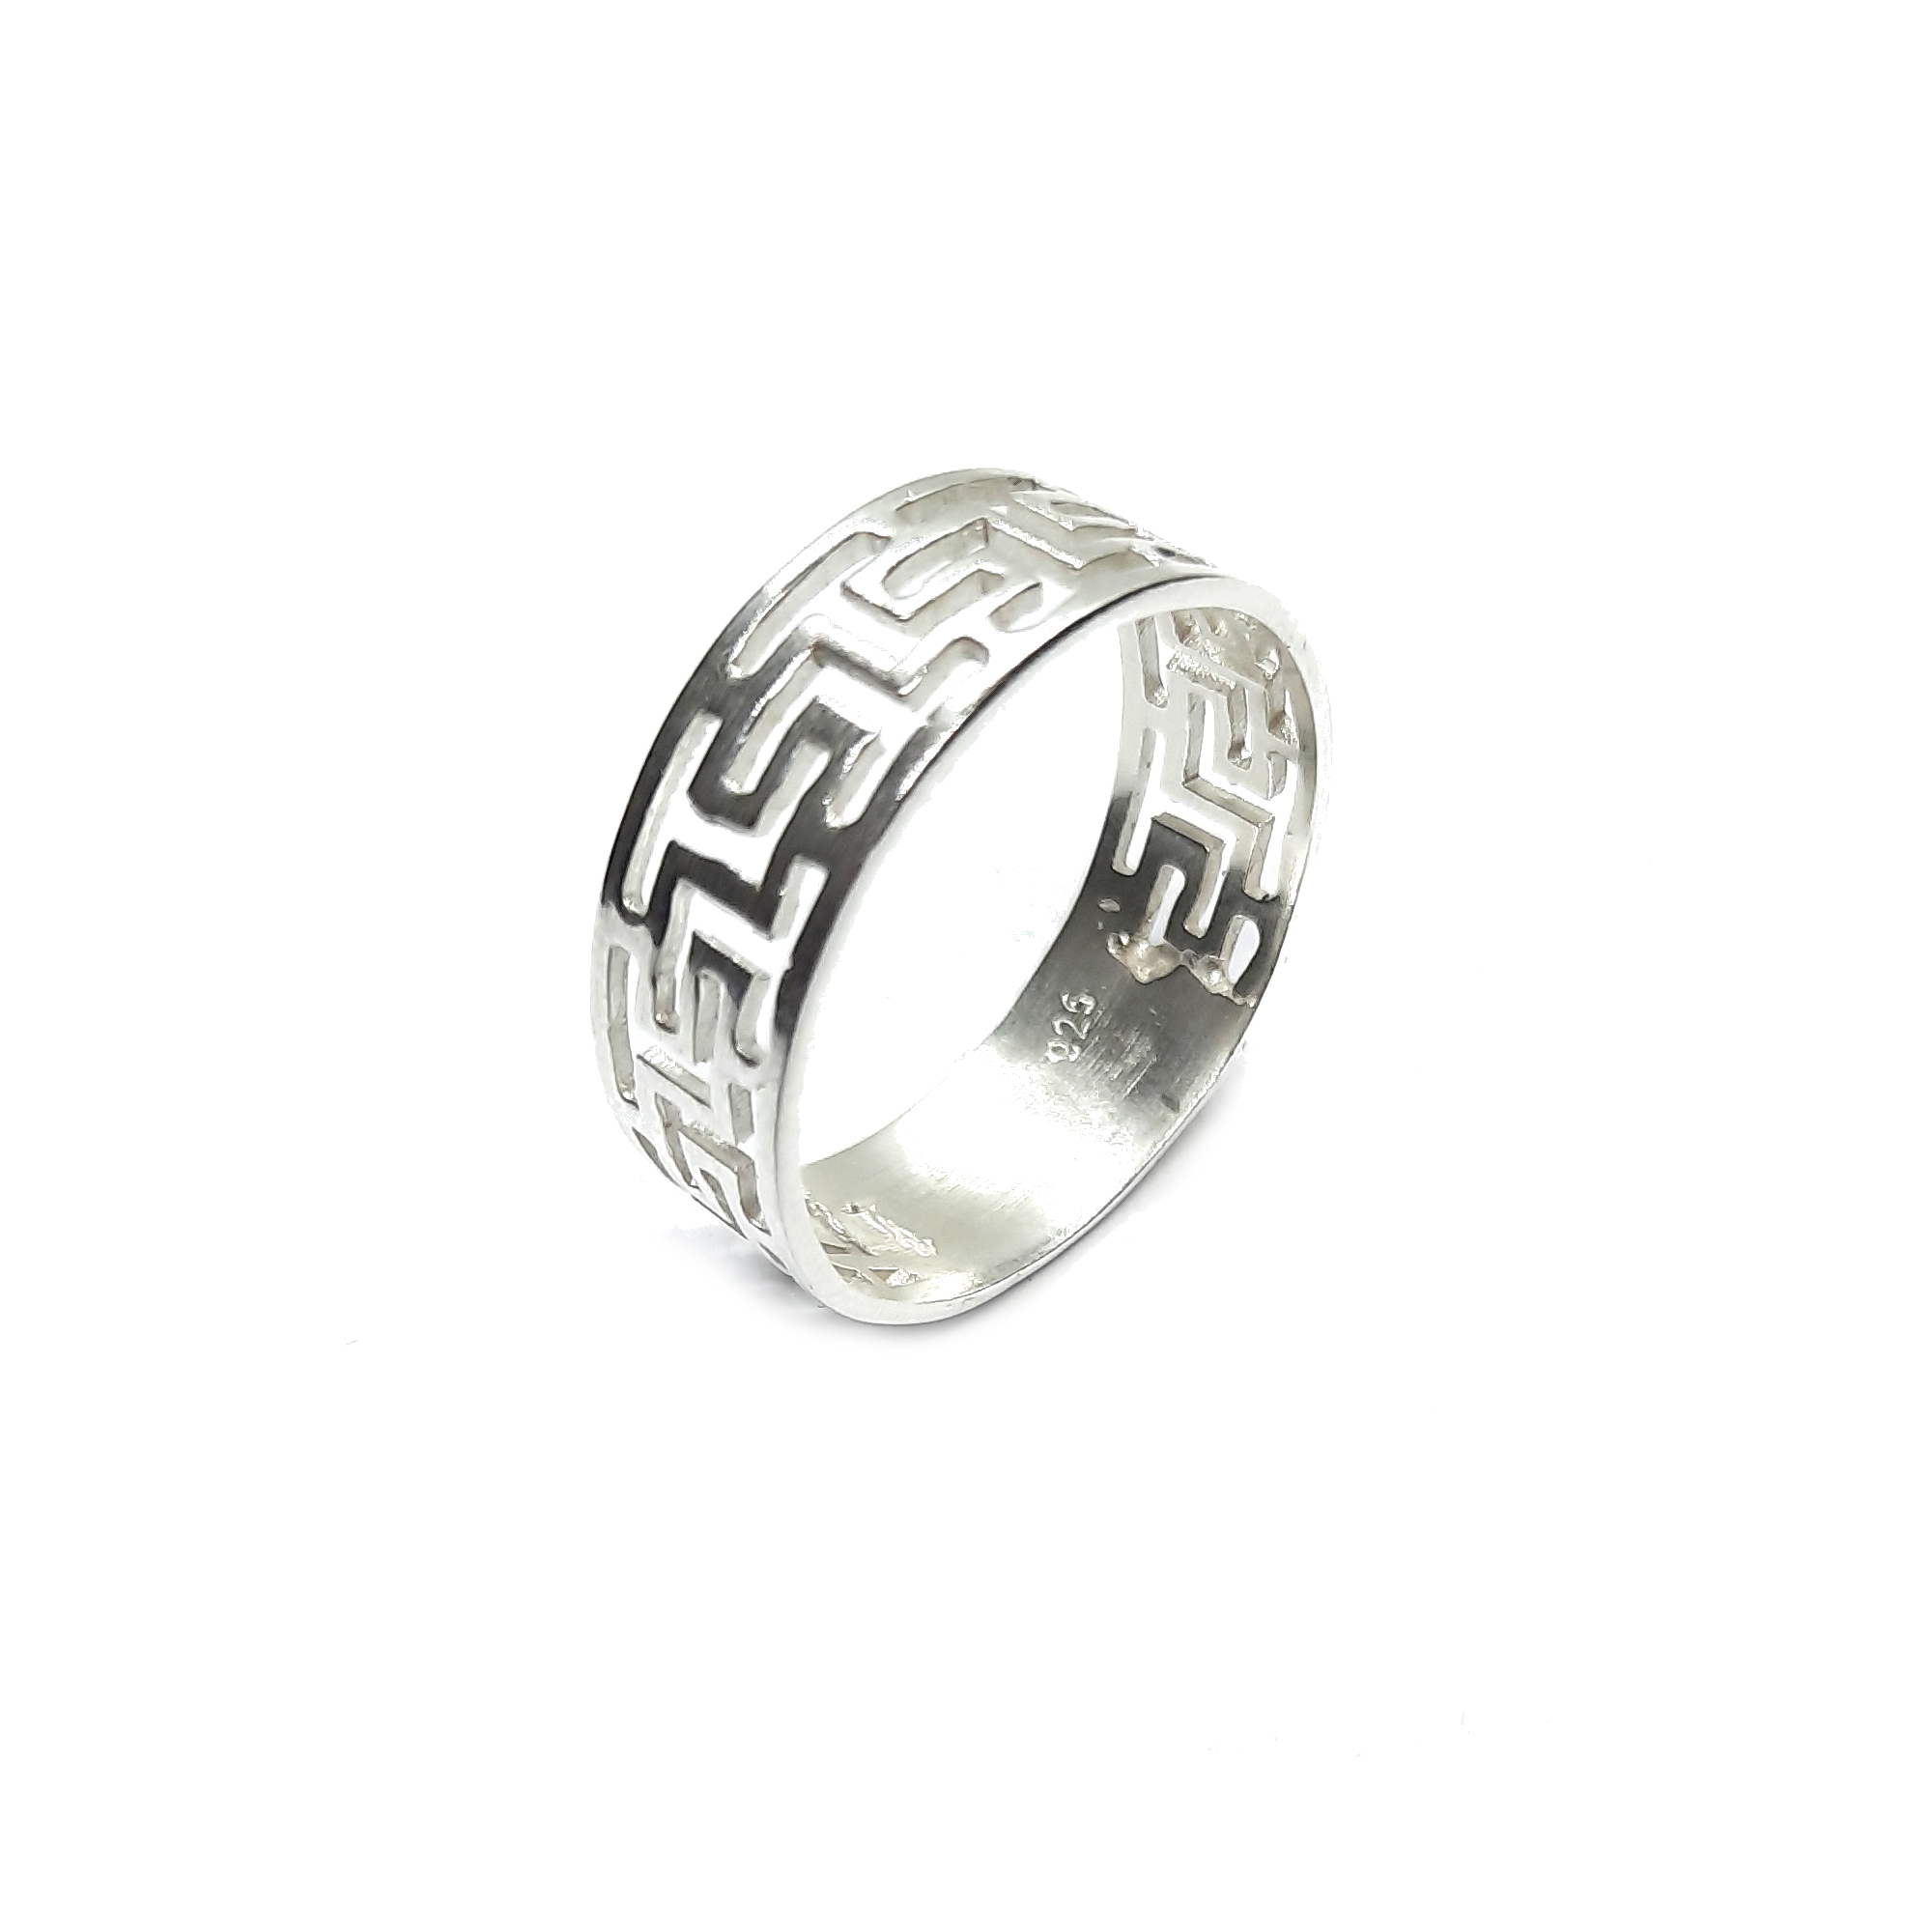 Silver ring - R002217